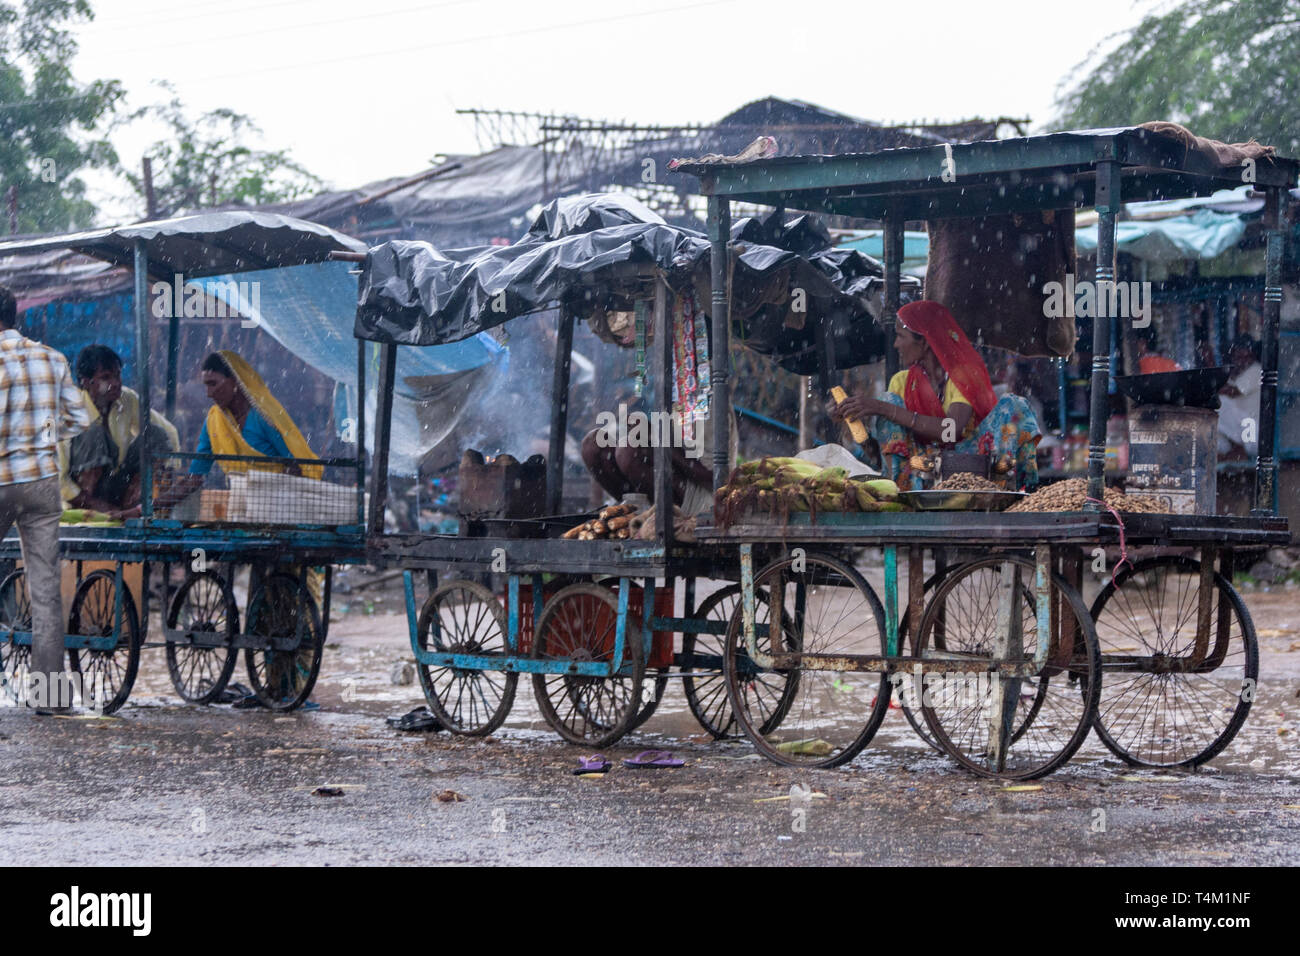 Street food market carts under a heavy rain in Rajasthan, India - Stock Image